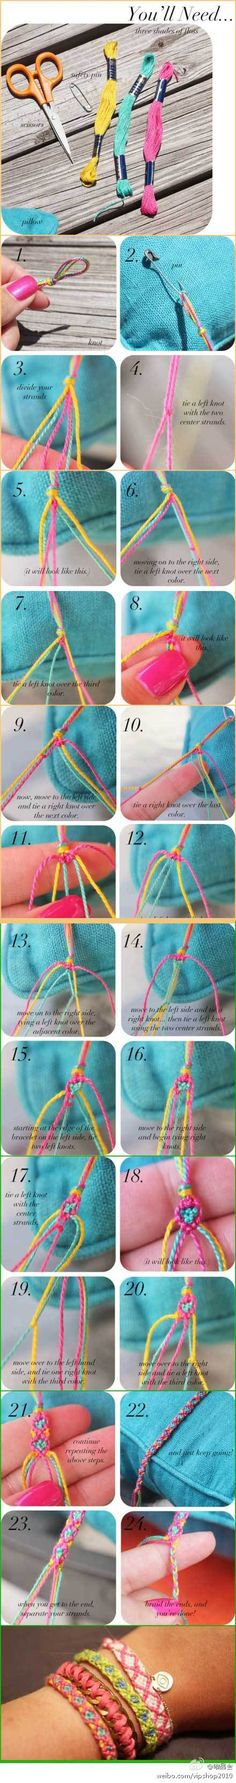 How to for friendship bracelet